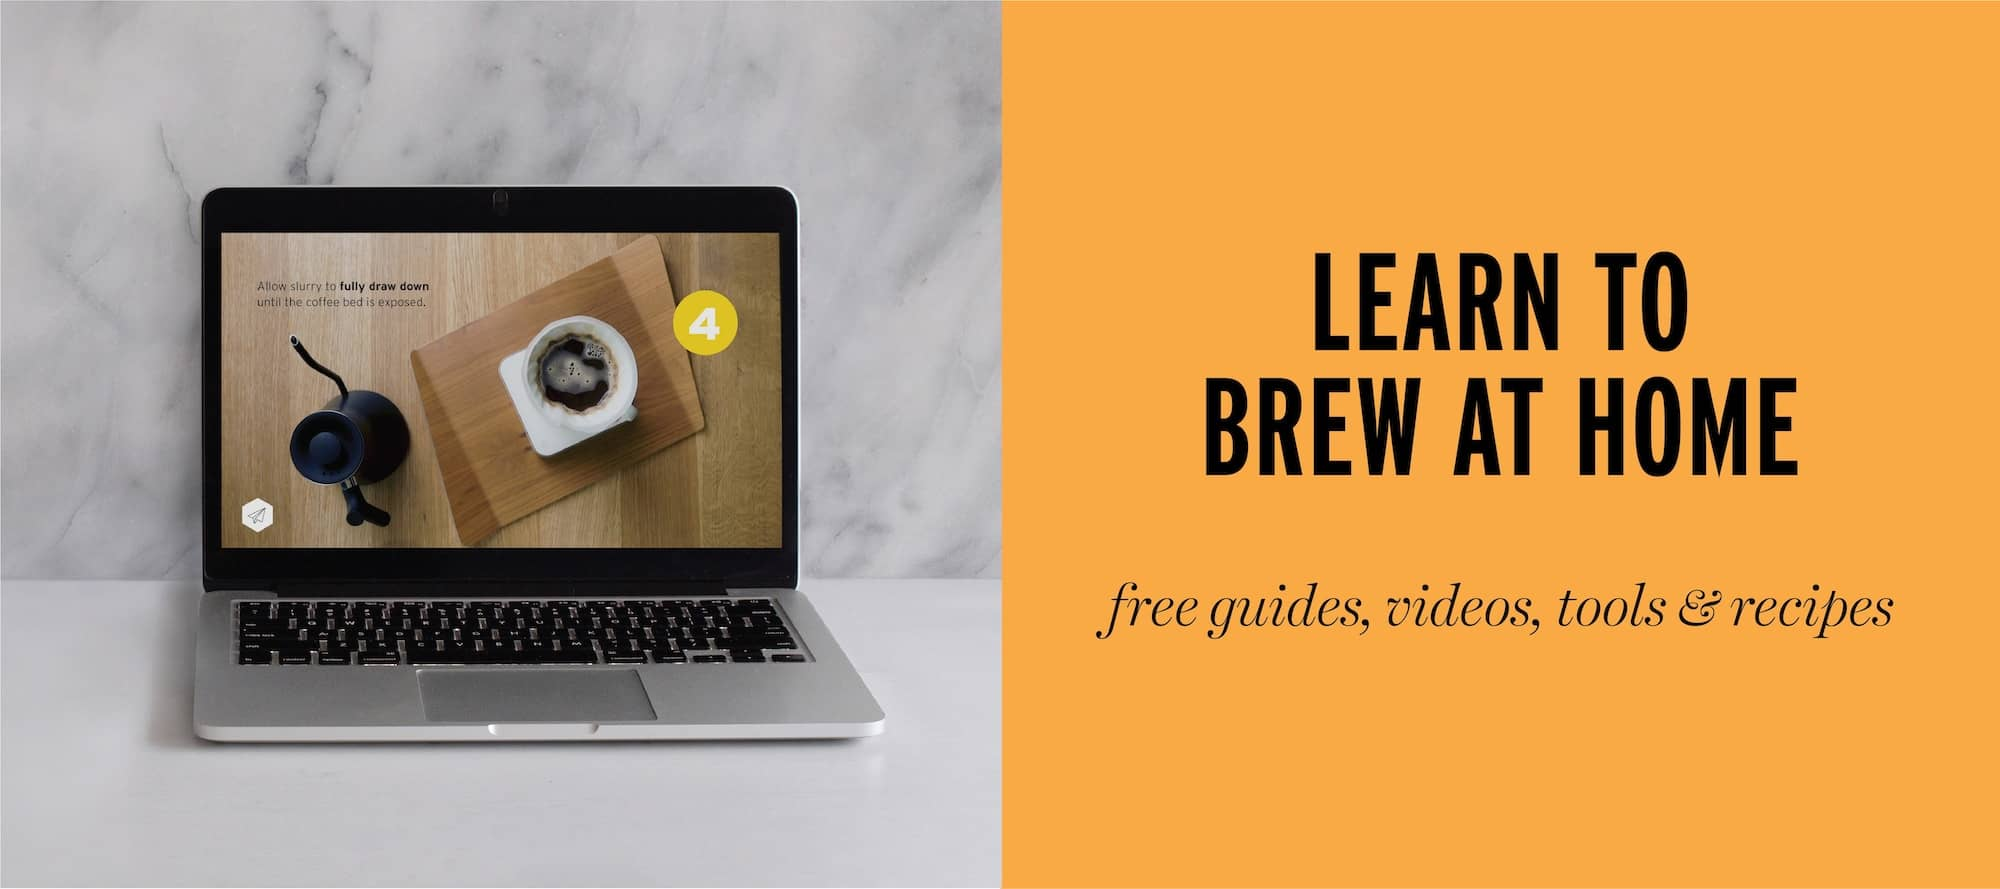 Learn to brew coffee at home, computer with coffee how-to video